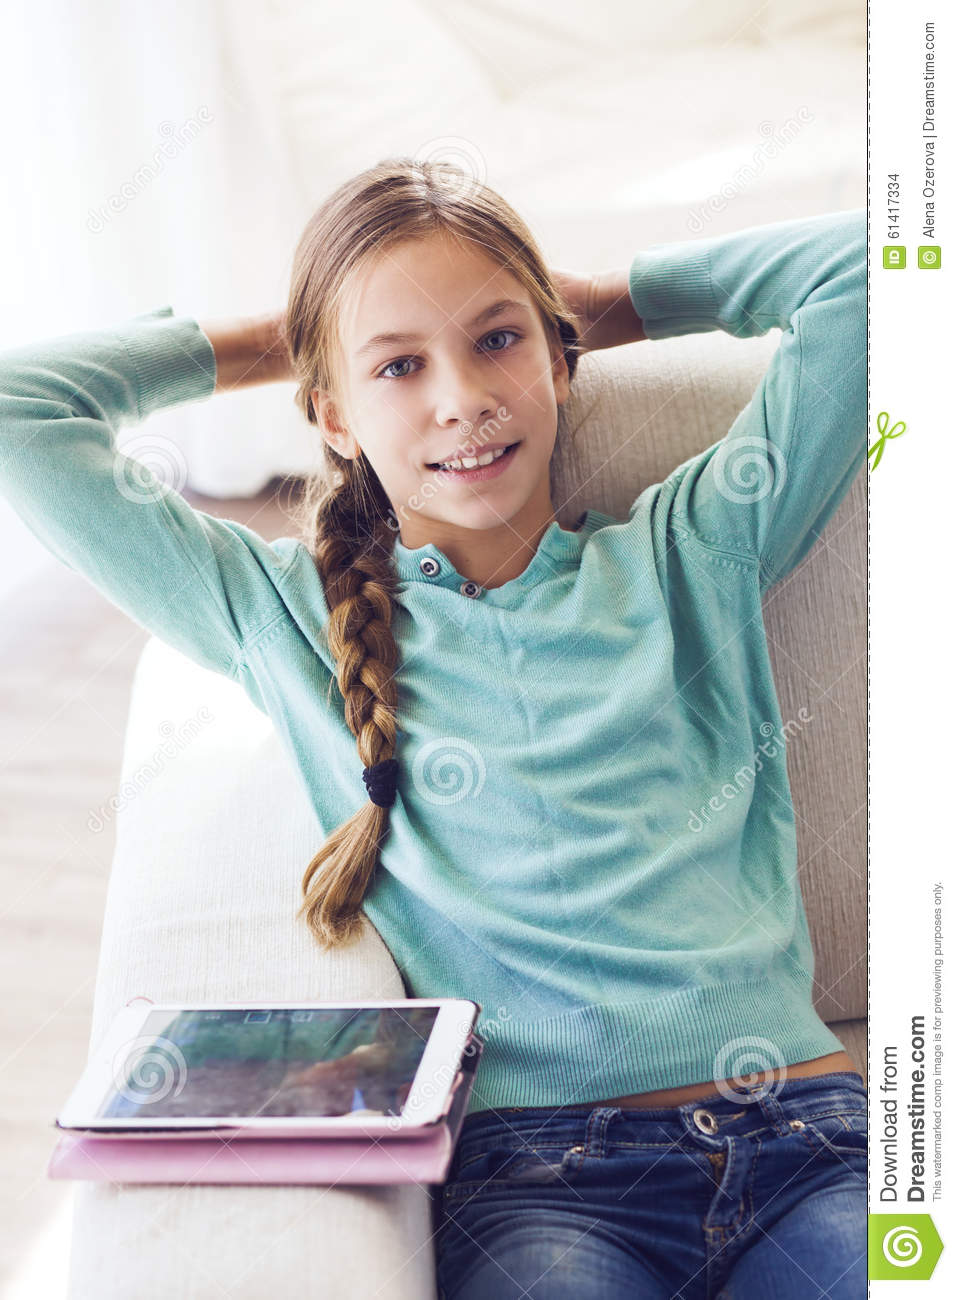 Child Using Ipad Stock Photo Image 61417334